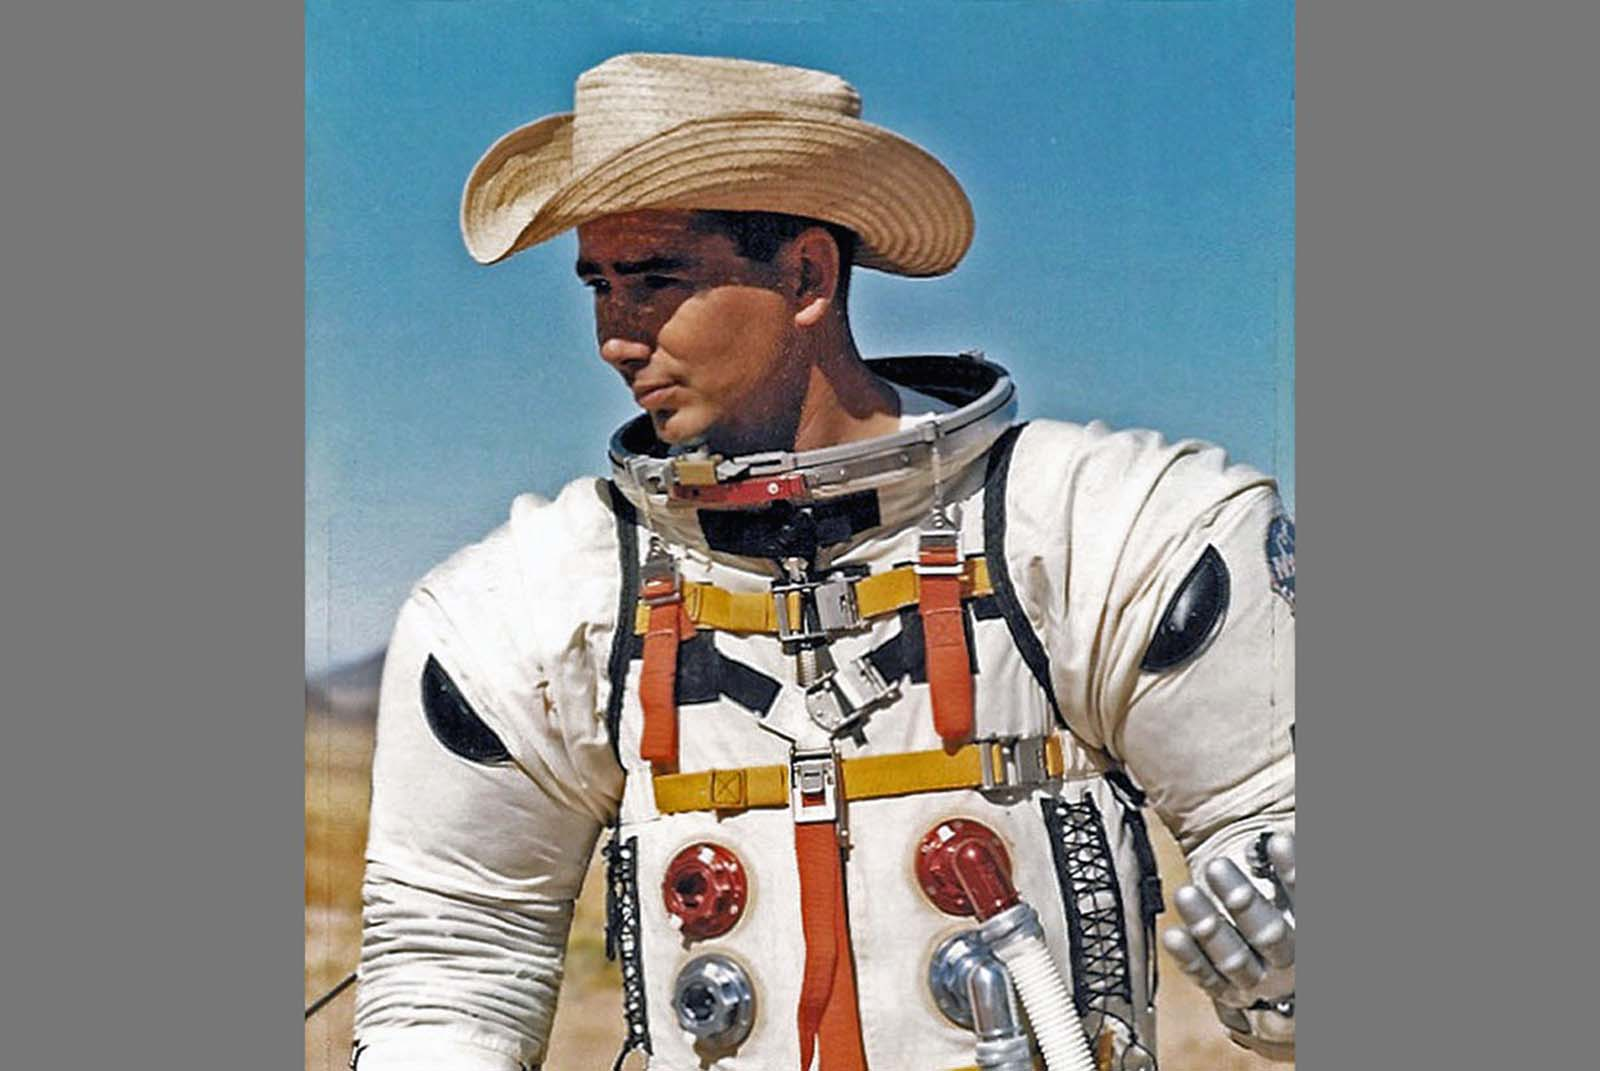 The USGS geologist Joe O'Connor wears an early version of the Apollo spacesuit during testing in the fall of 1965, at Apollo mesa dike in the Hopi Buttes volcanic field in Arizona.